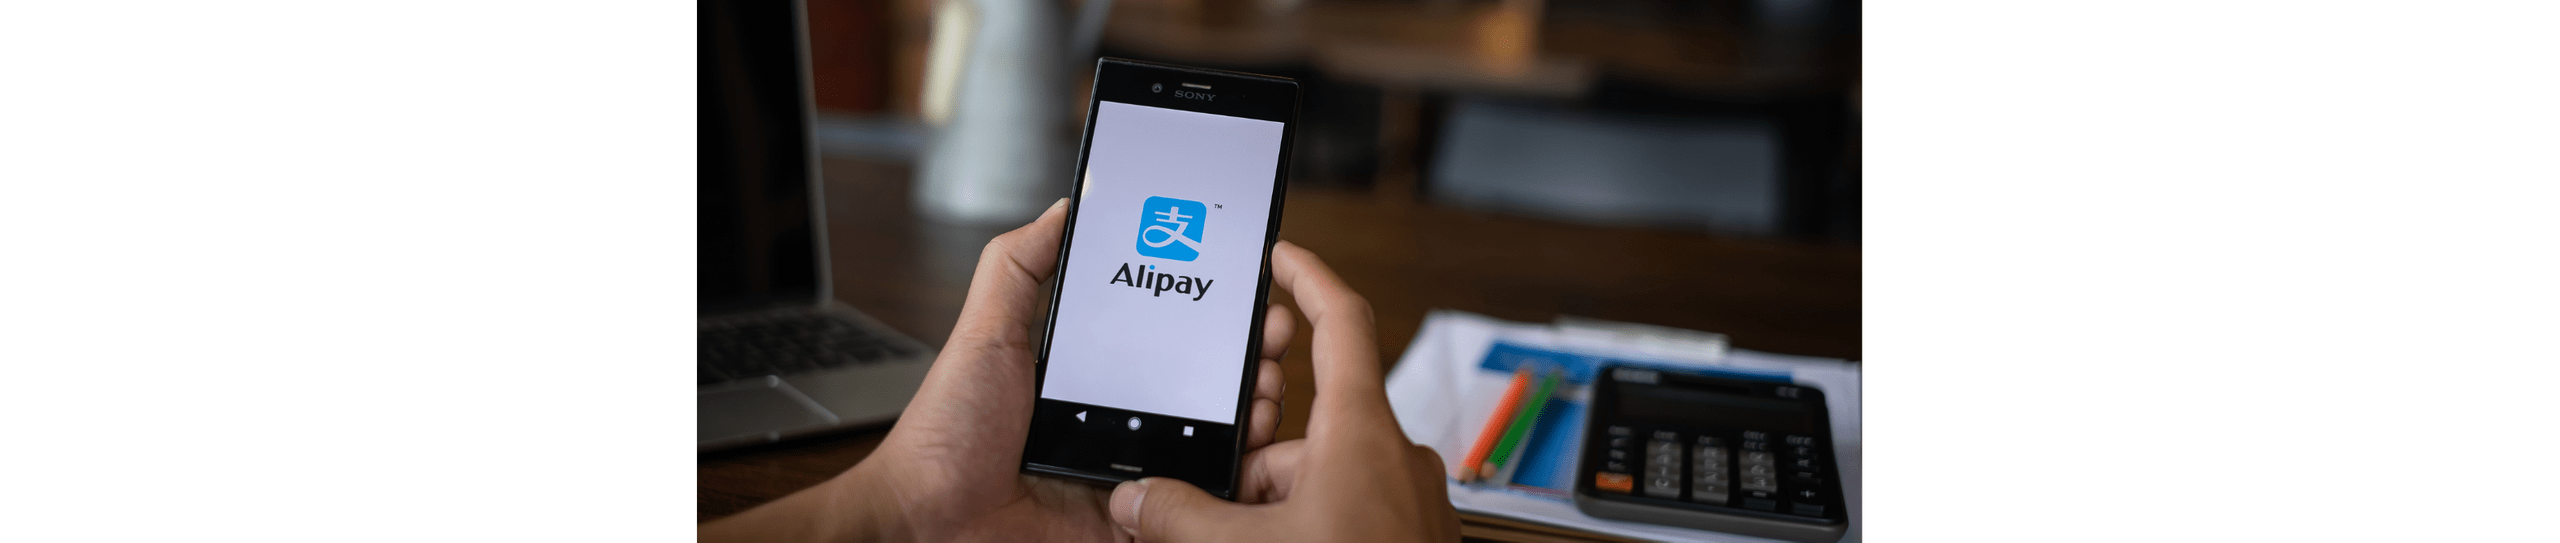 An image of the Alipay logo on a mobile phone